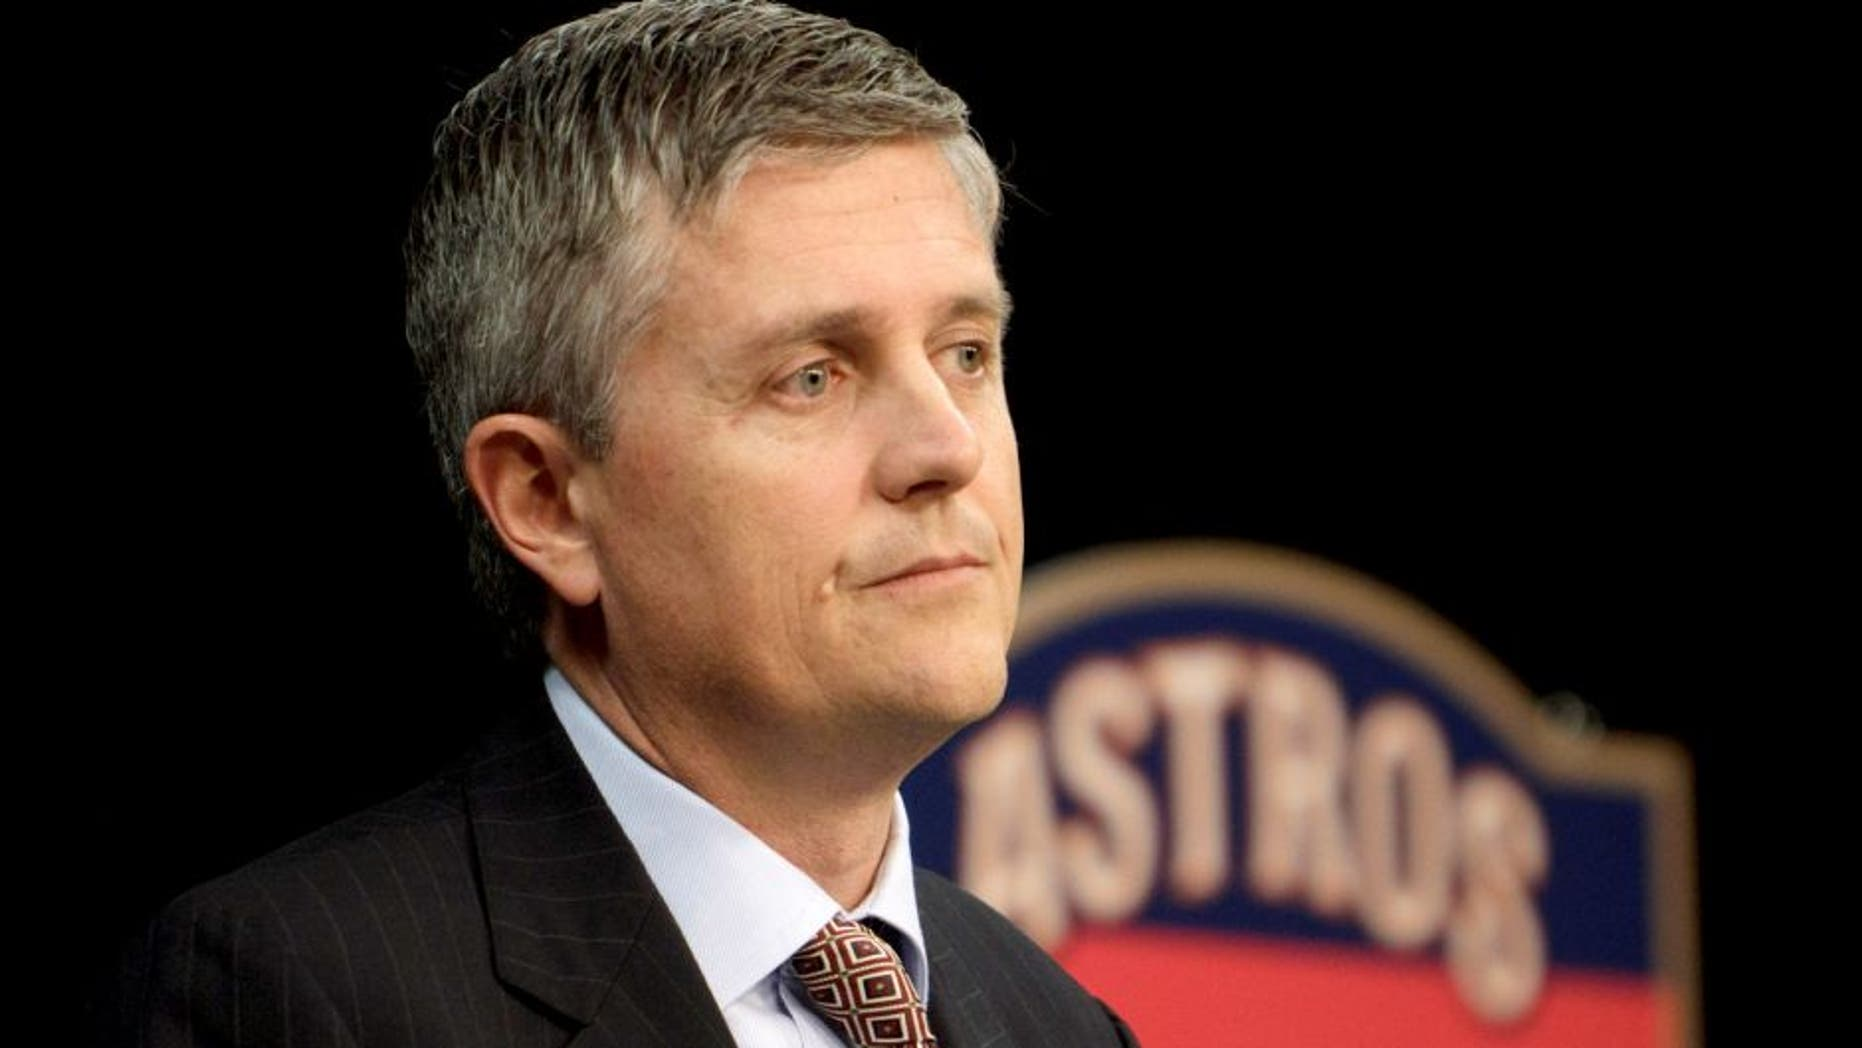 HOUSTON, TX - DECEMBER 08: Jeff Luhnow answers questions from the media as the newly-hired Houston Astros general manager during a press conference at Minute Maid Park on December 8, 2011 in Houston, Texas. Luhnow was vice president with the St. Louis Cardinals before joining the Astros. (Photo by Bob Levey/Getty Images)